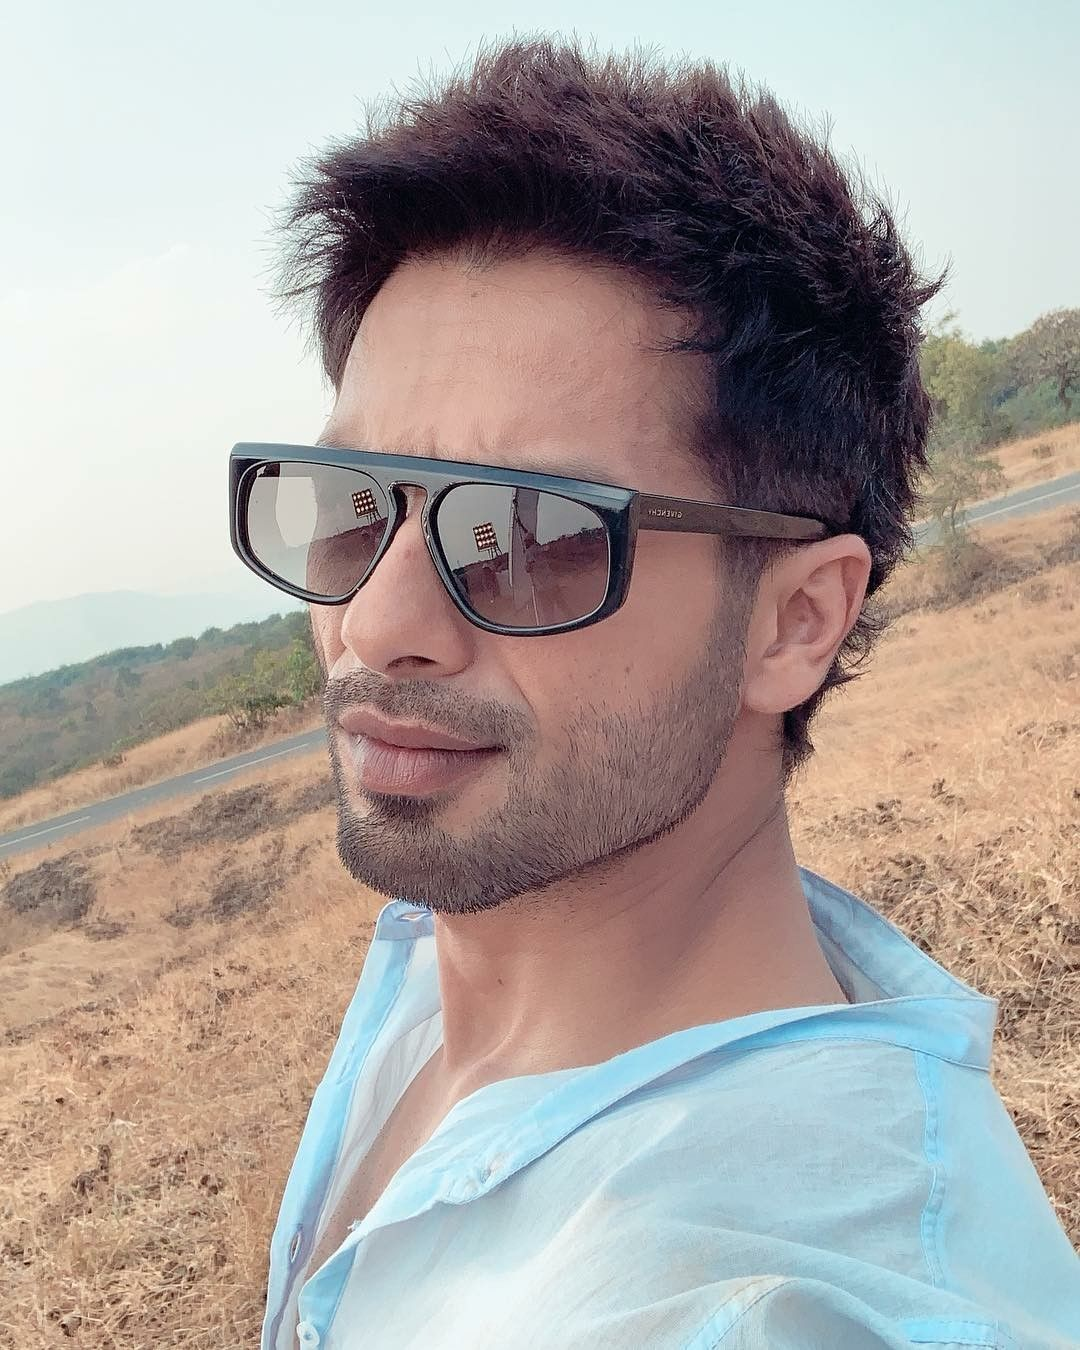 Shahid kapoor 2019 dating sims